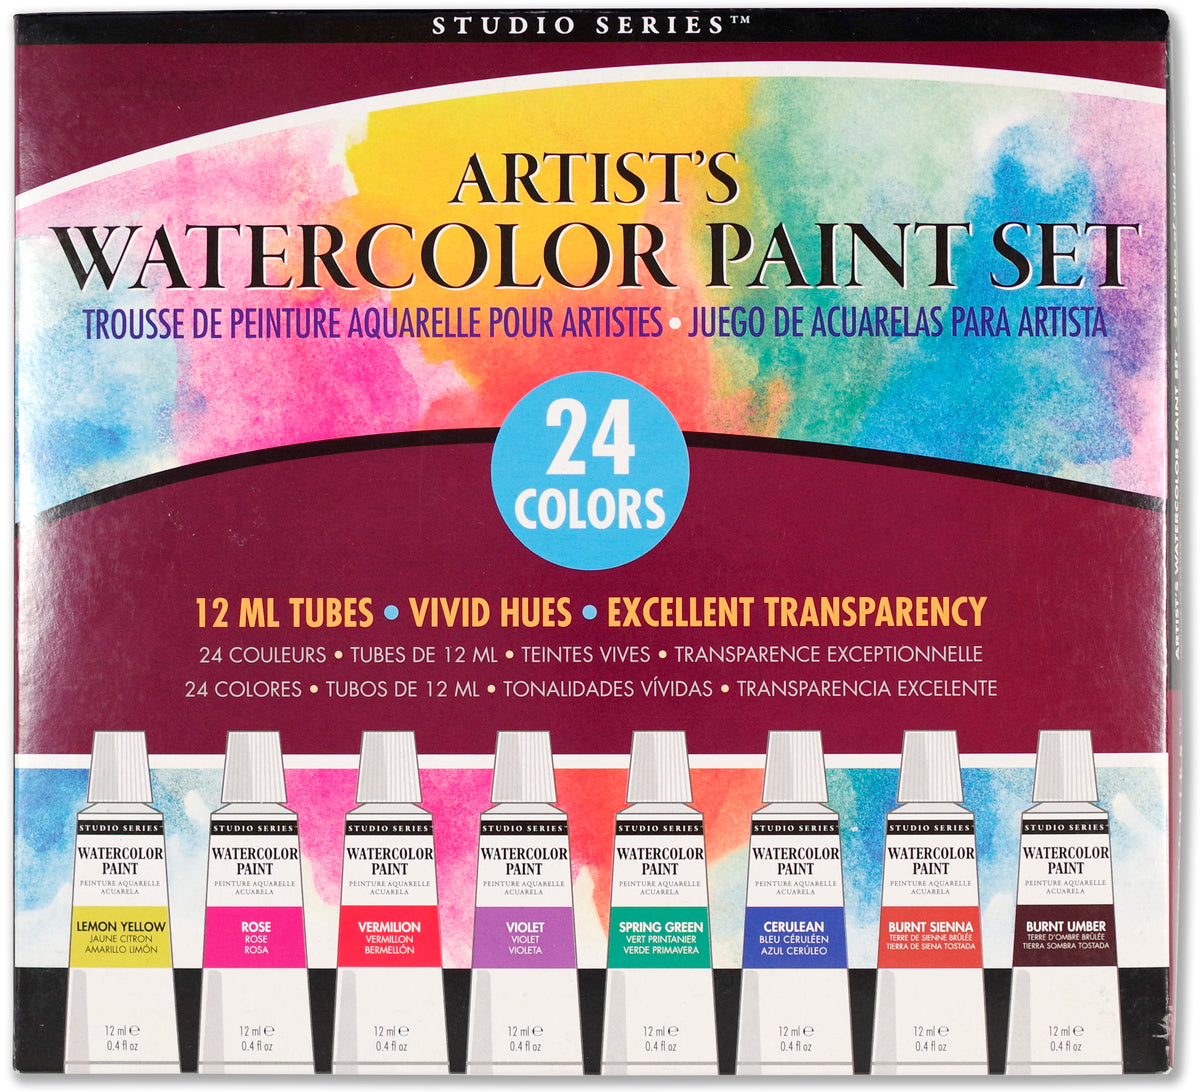 Studio Series Artist's Watercolor Paint Set